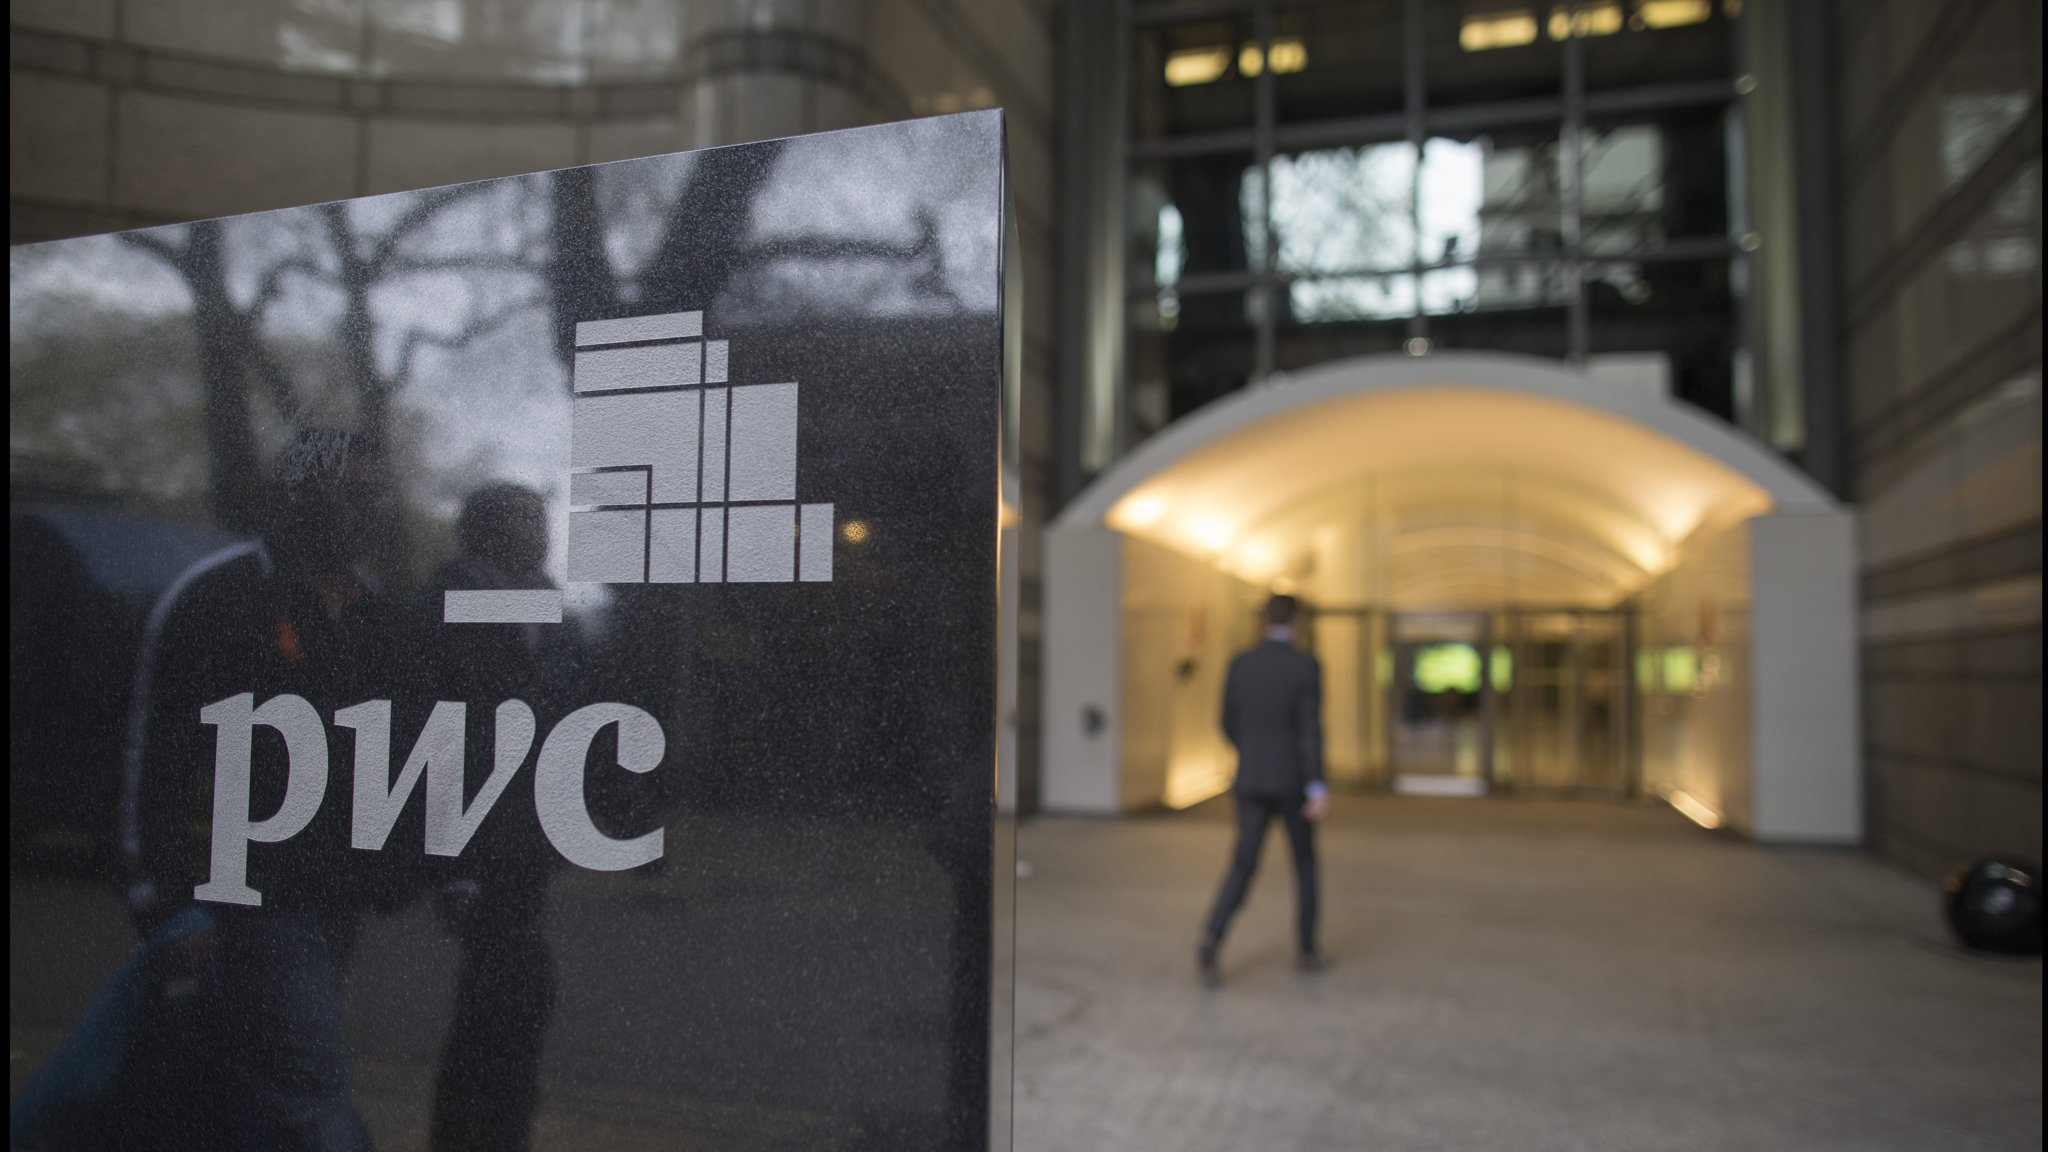 PwC 'fell short' on averting one of the biggest US bank collapses